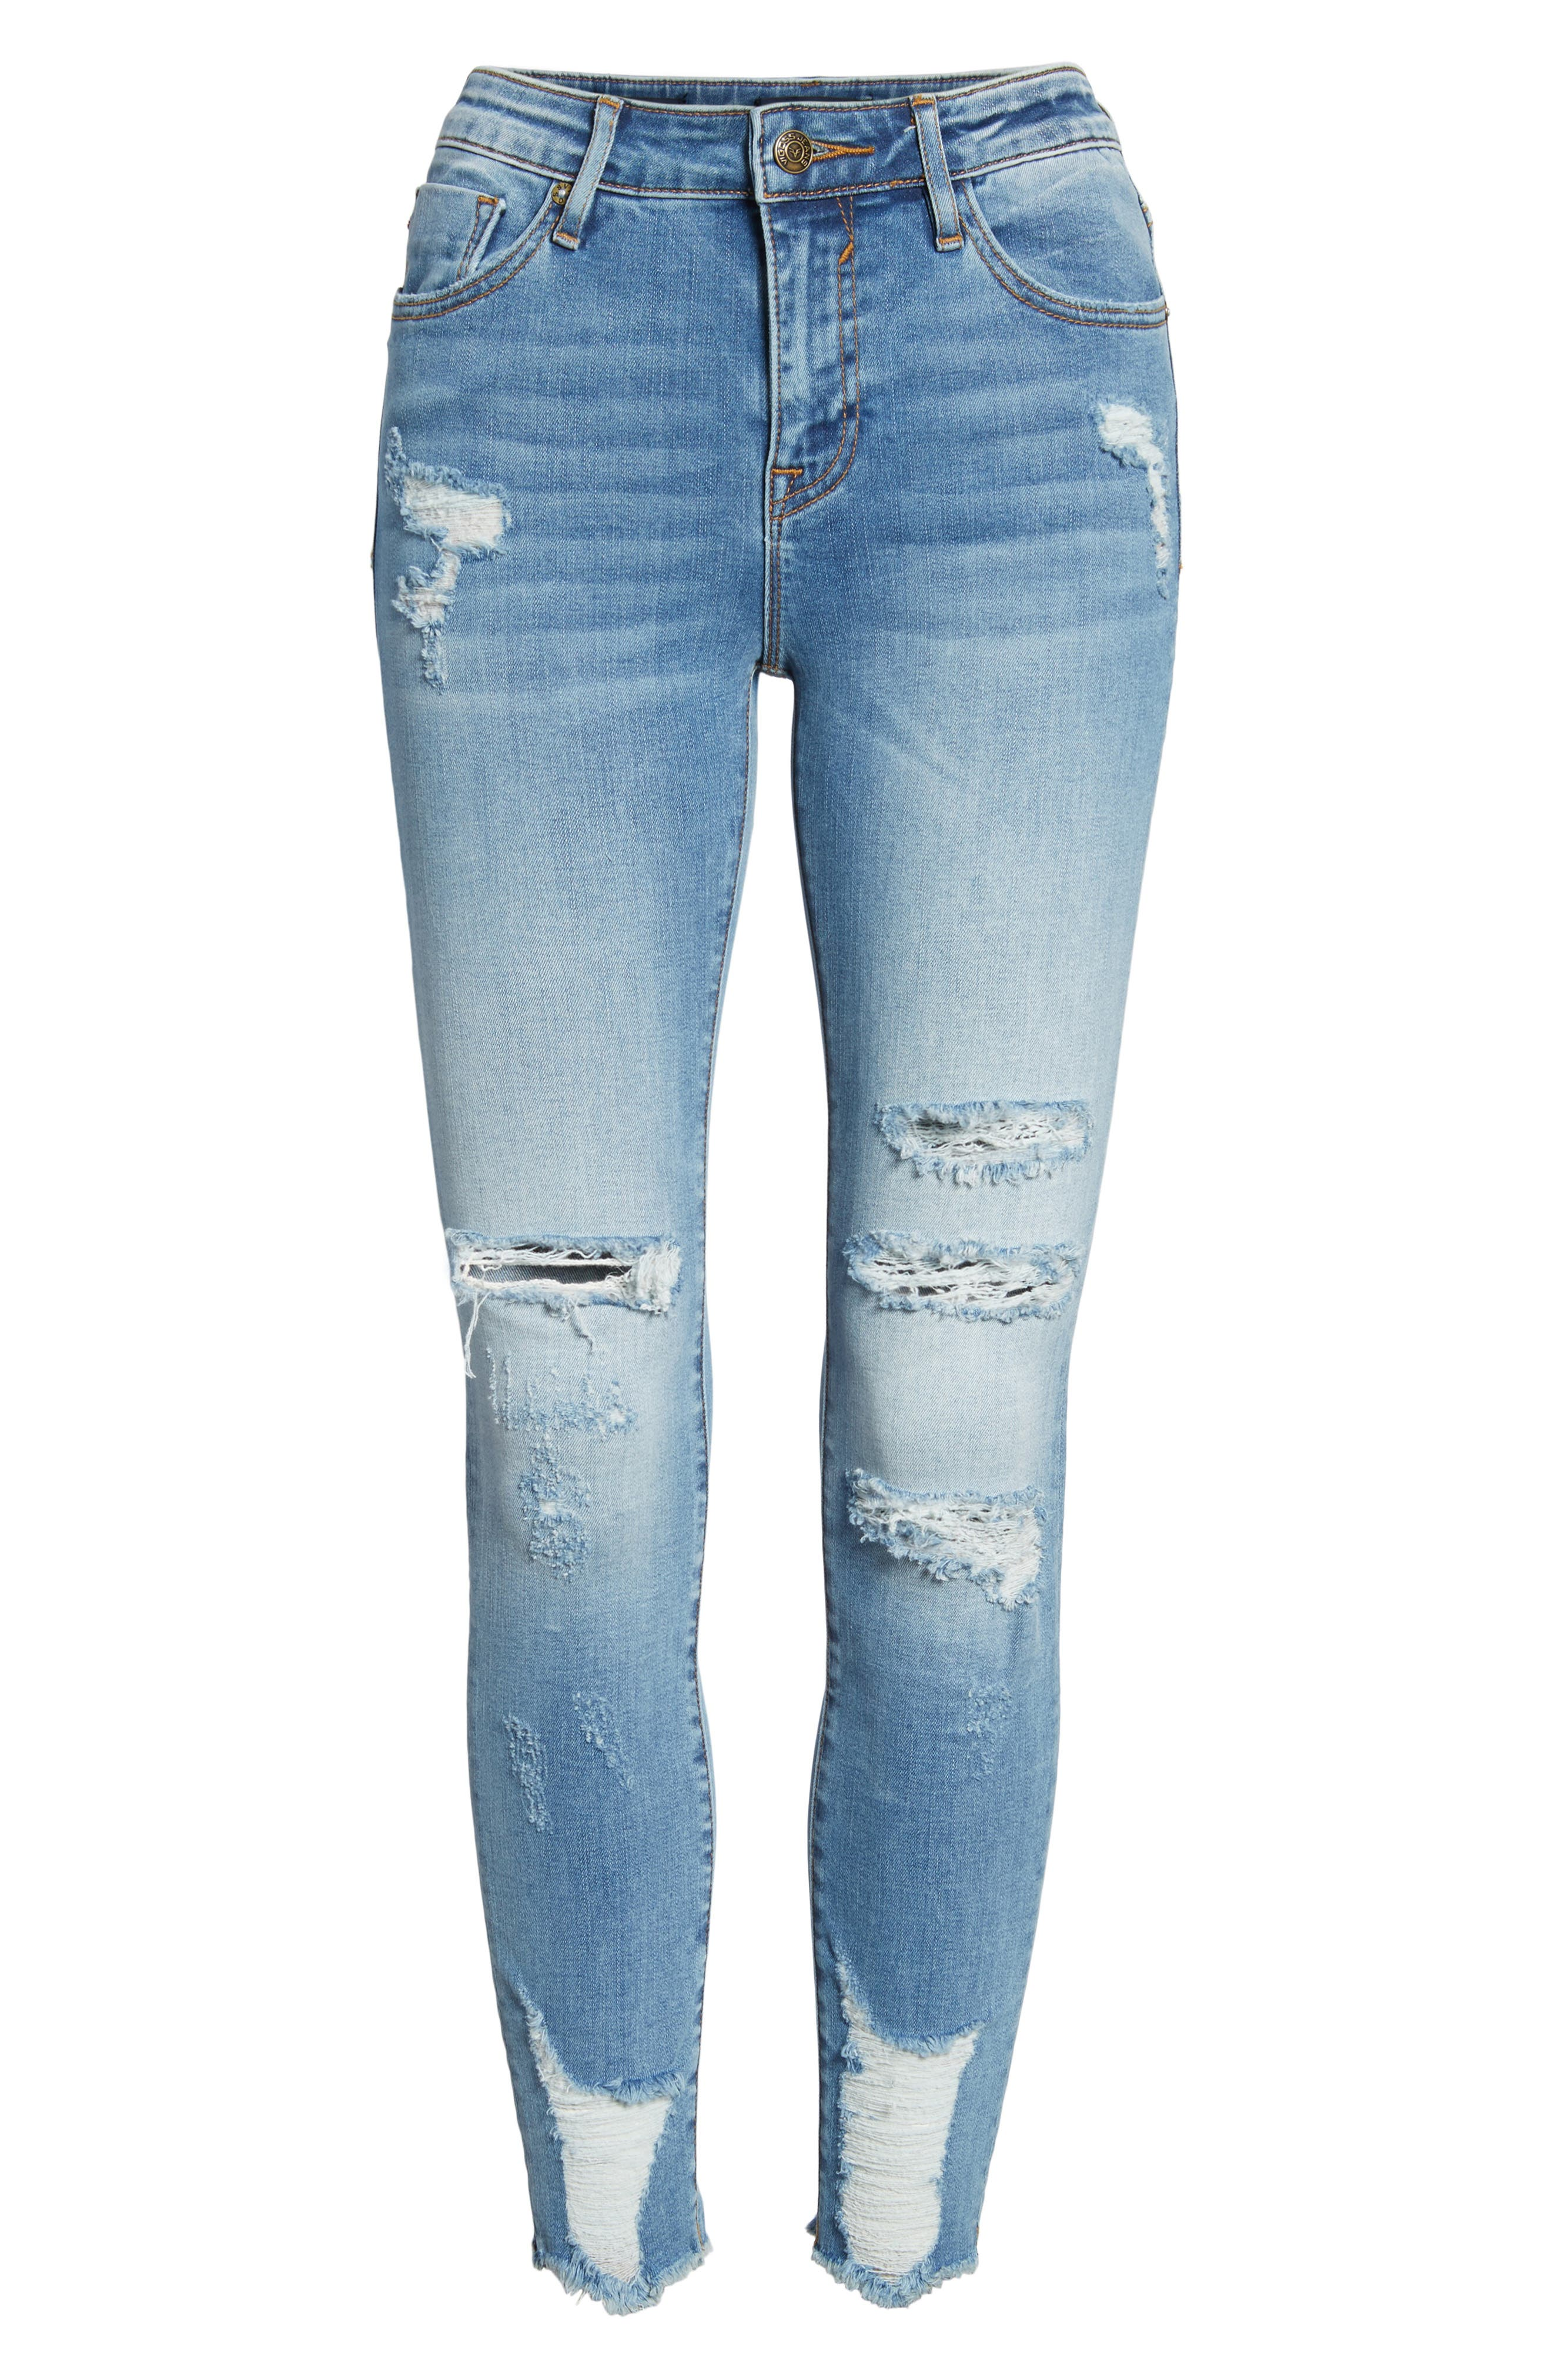 Marley Distressed Skinny Jeans,                             Alternate thumbnail 6, color,                             Medium Wash